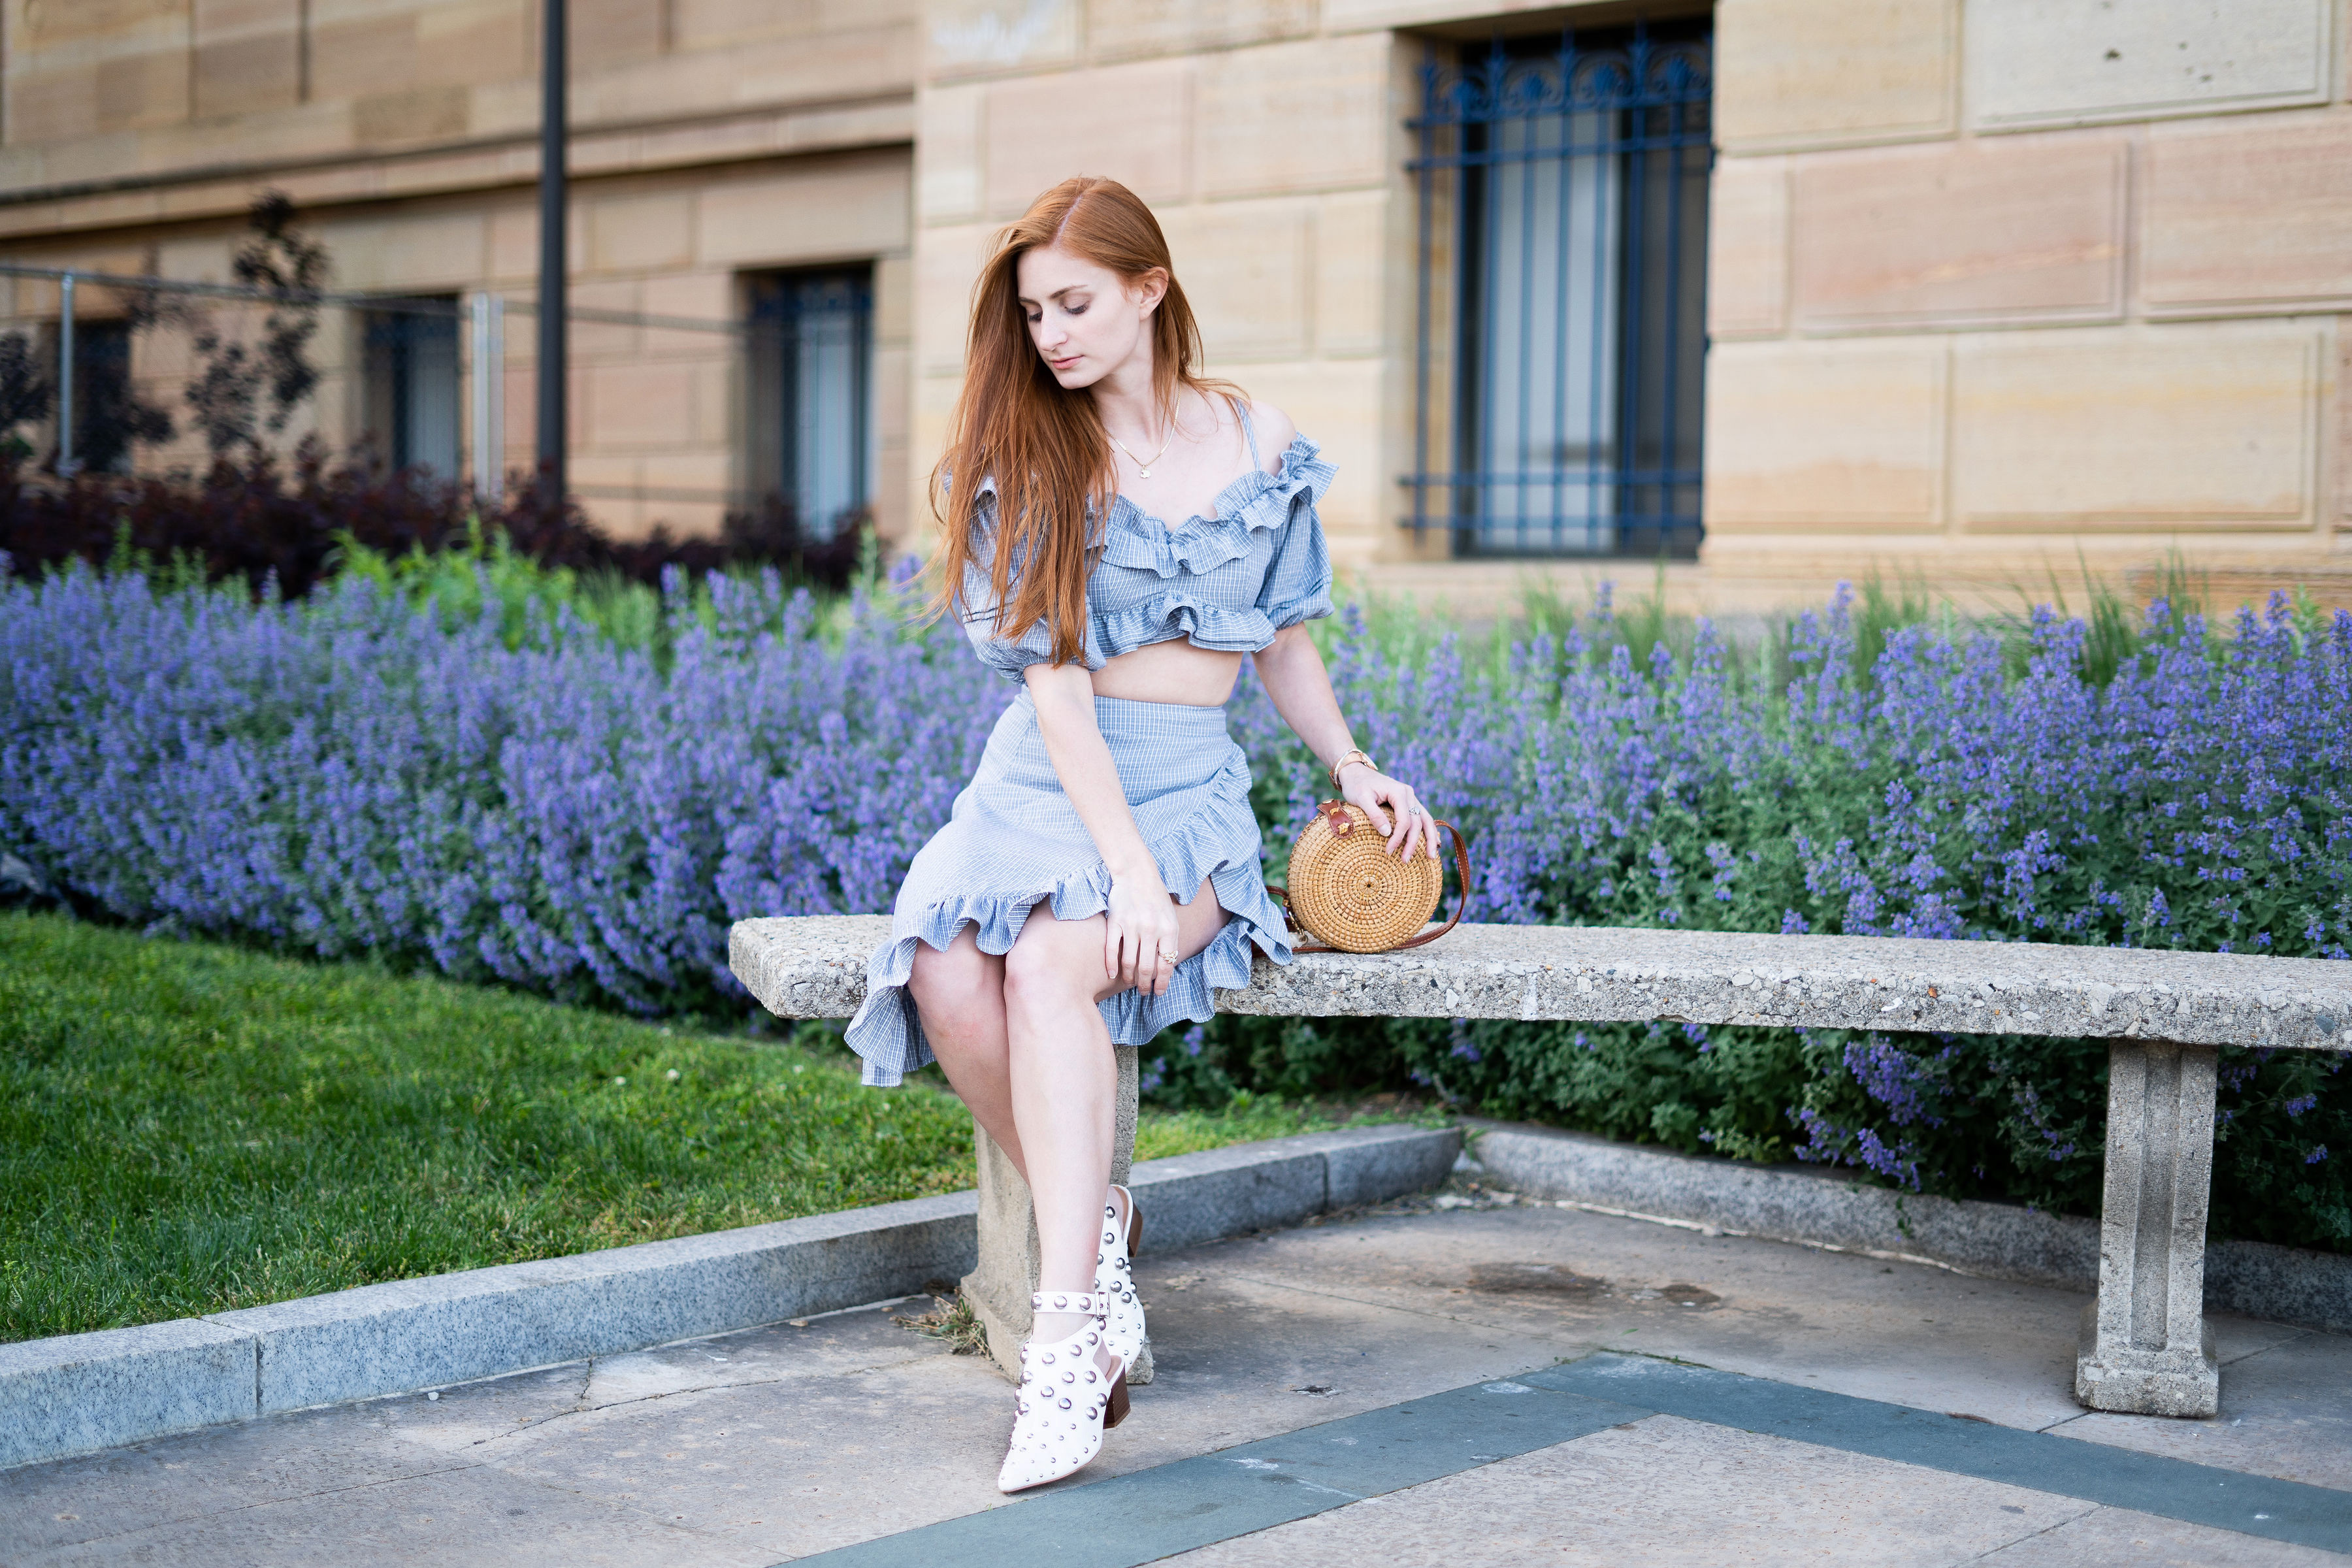 Ruffles, Erin Leigh of She's Red Haute redhead wearing blue ruffle outfit and rattan circle bag sitting in front of purple flowers redhead